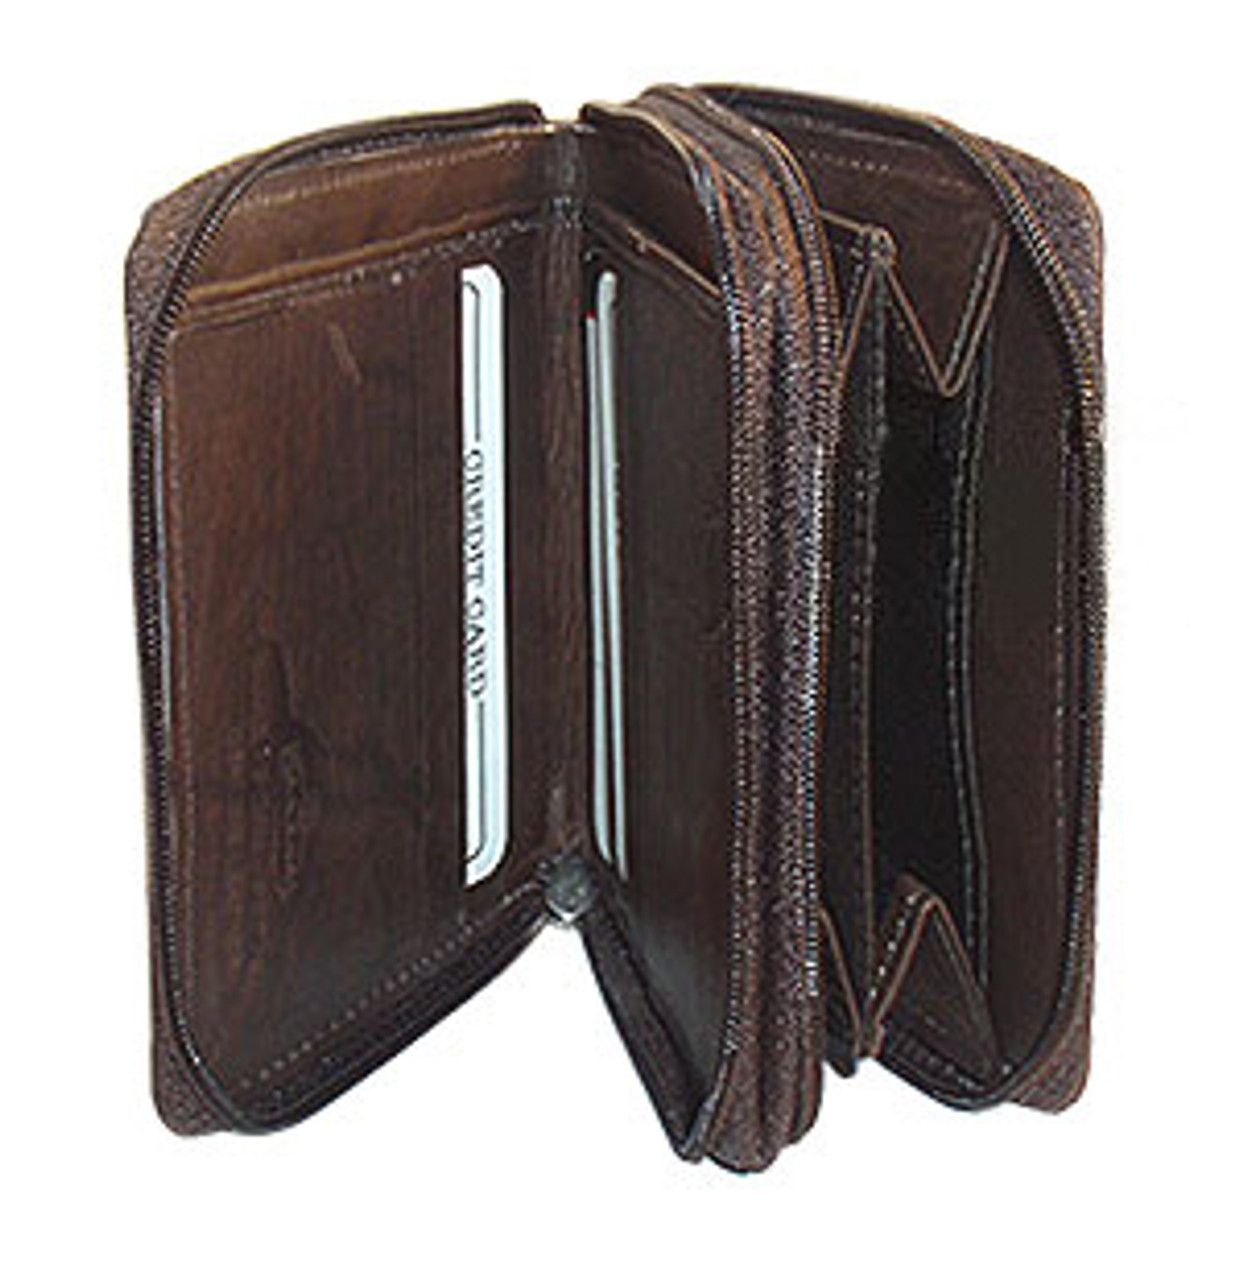 Brown Leather Credit Card Holder 4.75 x 3.75 inch Wallet